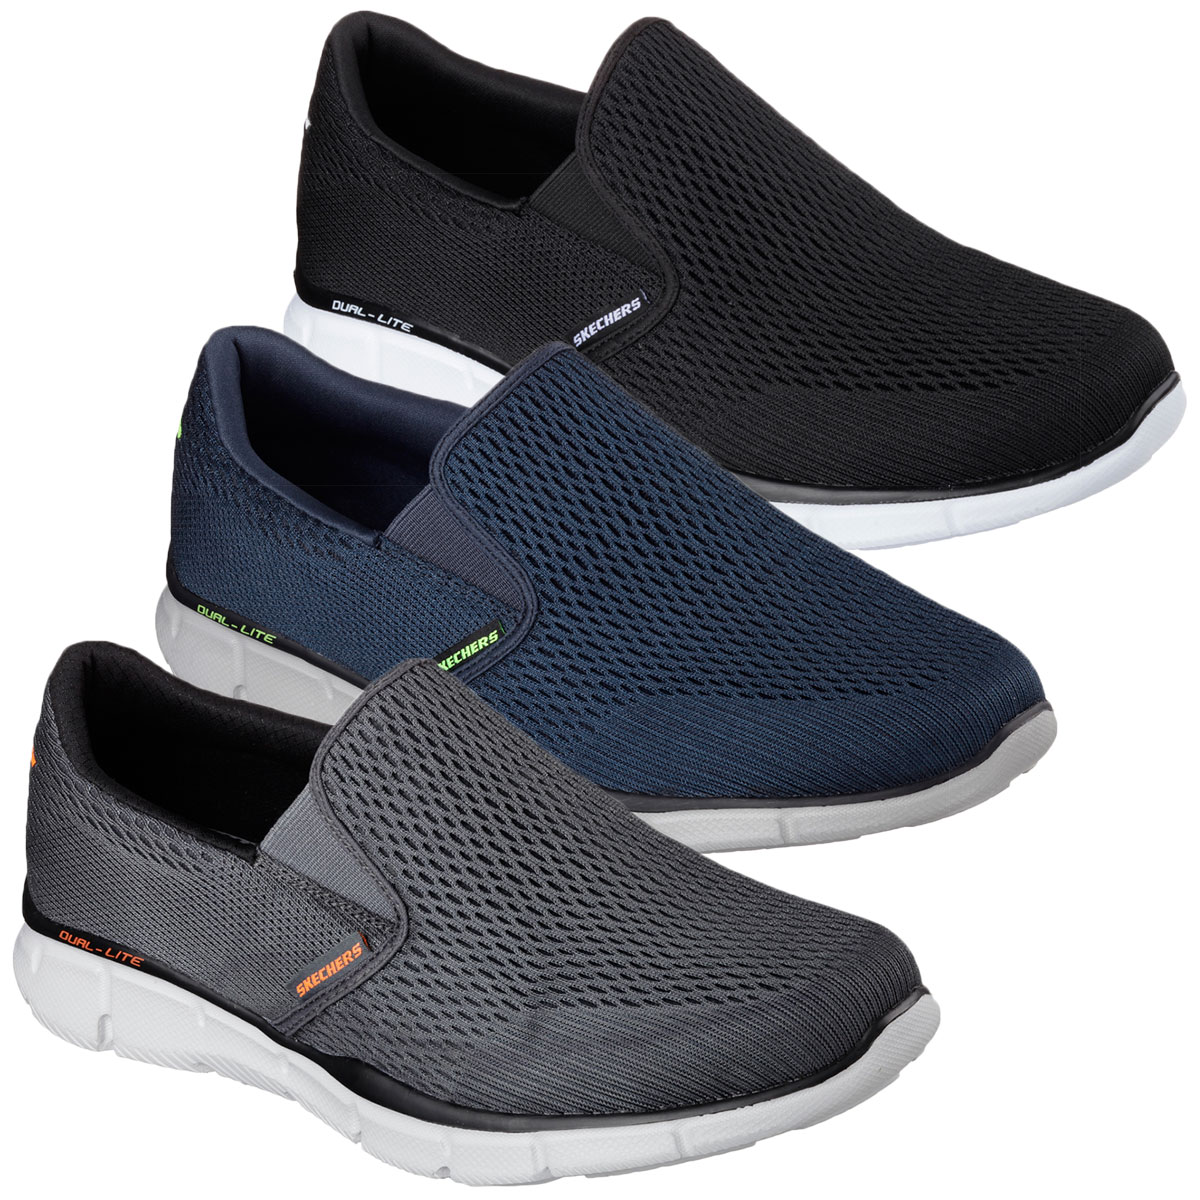 111e12f6fd7f Details about Skechers Mens Equalizer Double Play Slip On Sports Training  Shoes Trainers